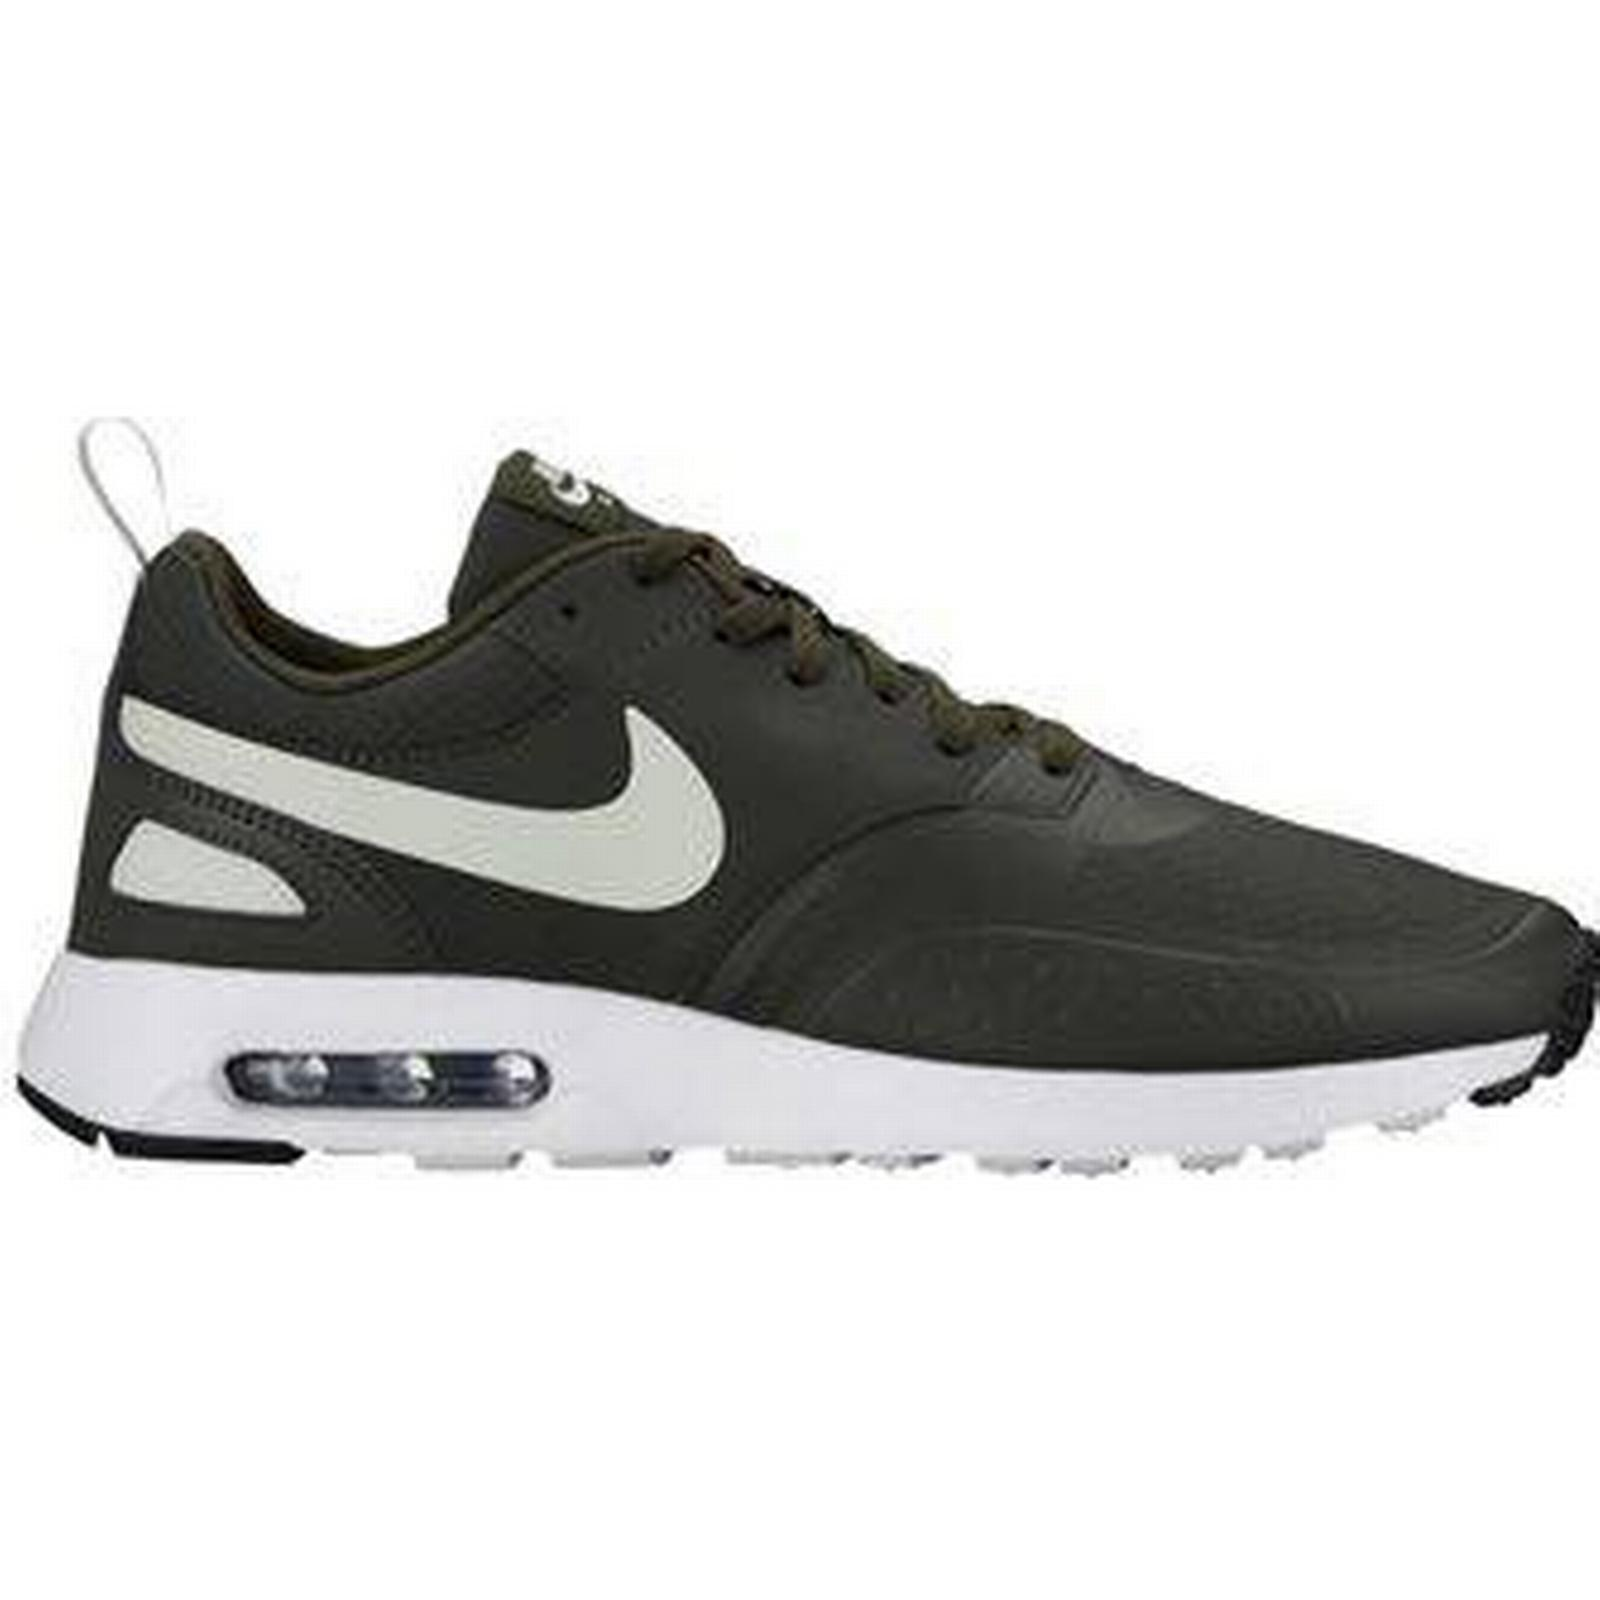 3ef5b675daf2 ... ireland le magasin de chaussures nike air max vision se os max sequoia  lumière 2bf11a 6af15